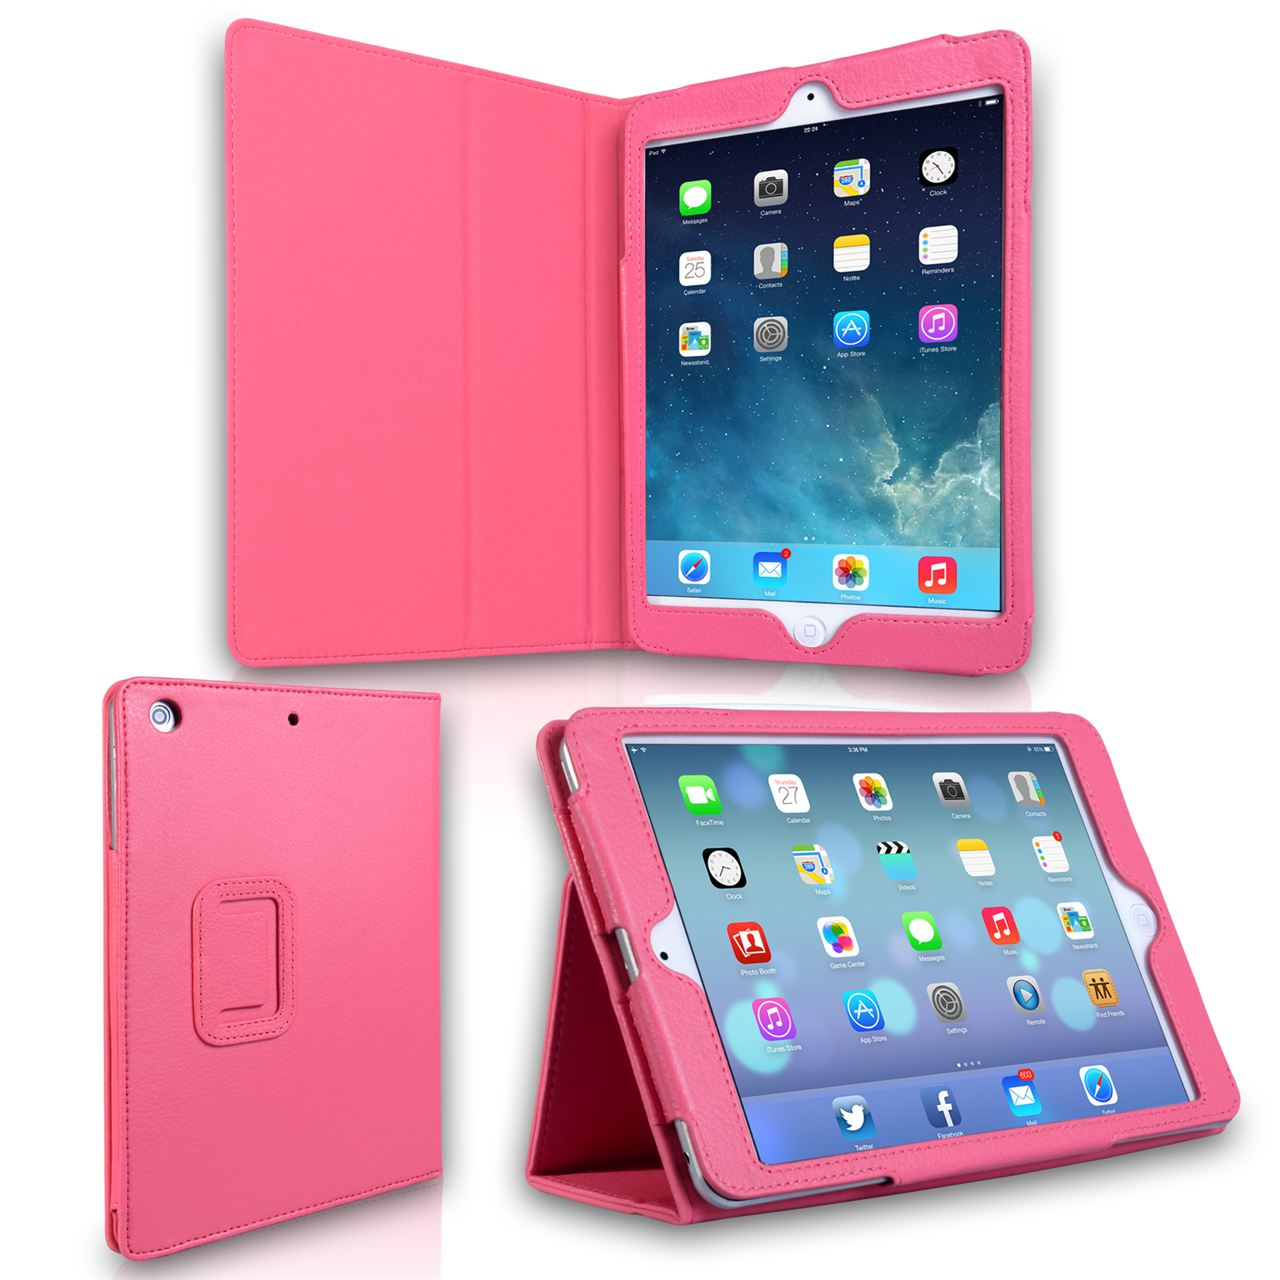 Caseflex iPad Mini 2 Textured Faux Leather Stand Case - Hot Pink